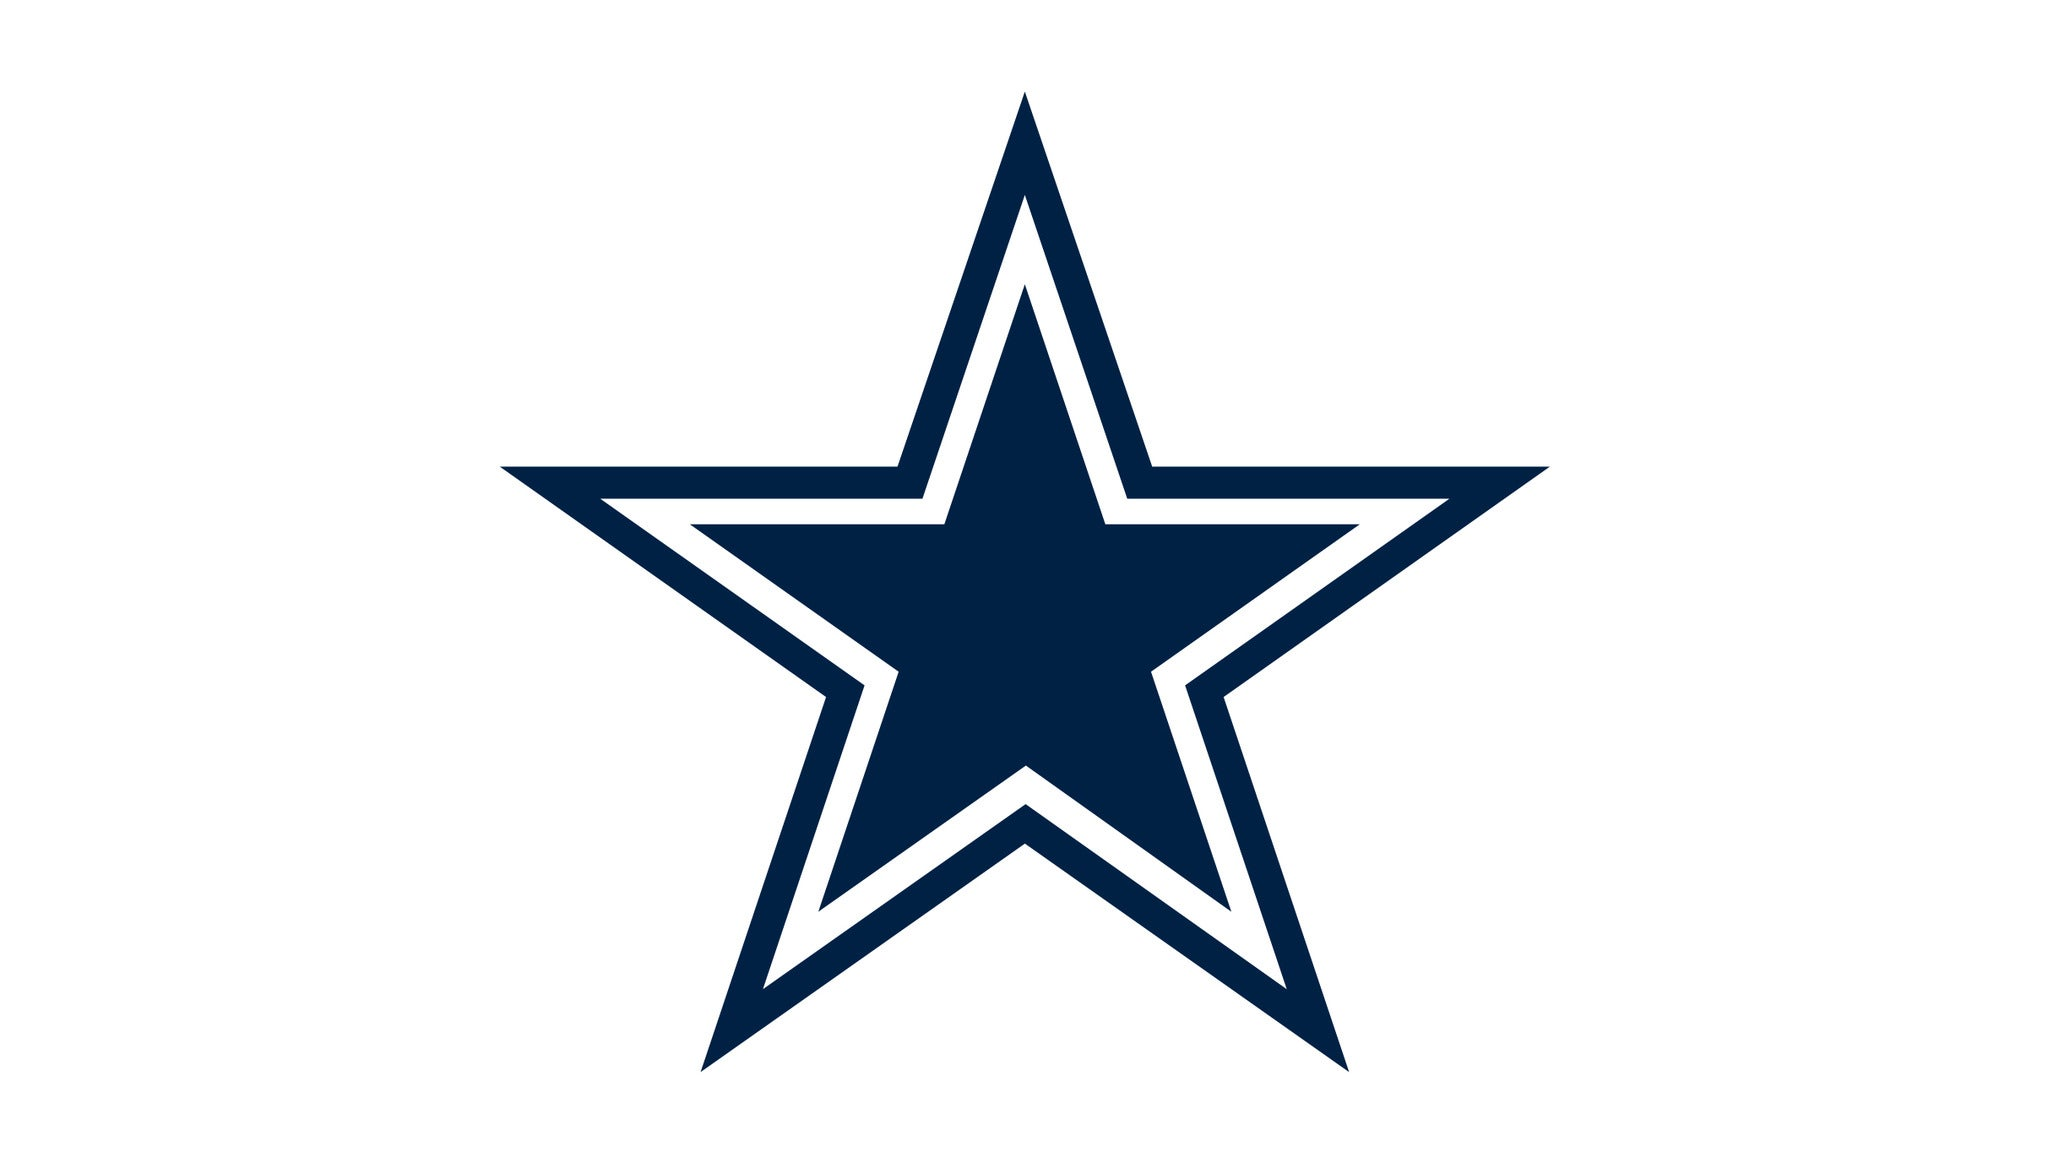 Dallas Cowboys vs. Los Angeles Chargers at AT&T Stadium - Arlington, TX 76011